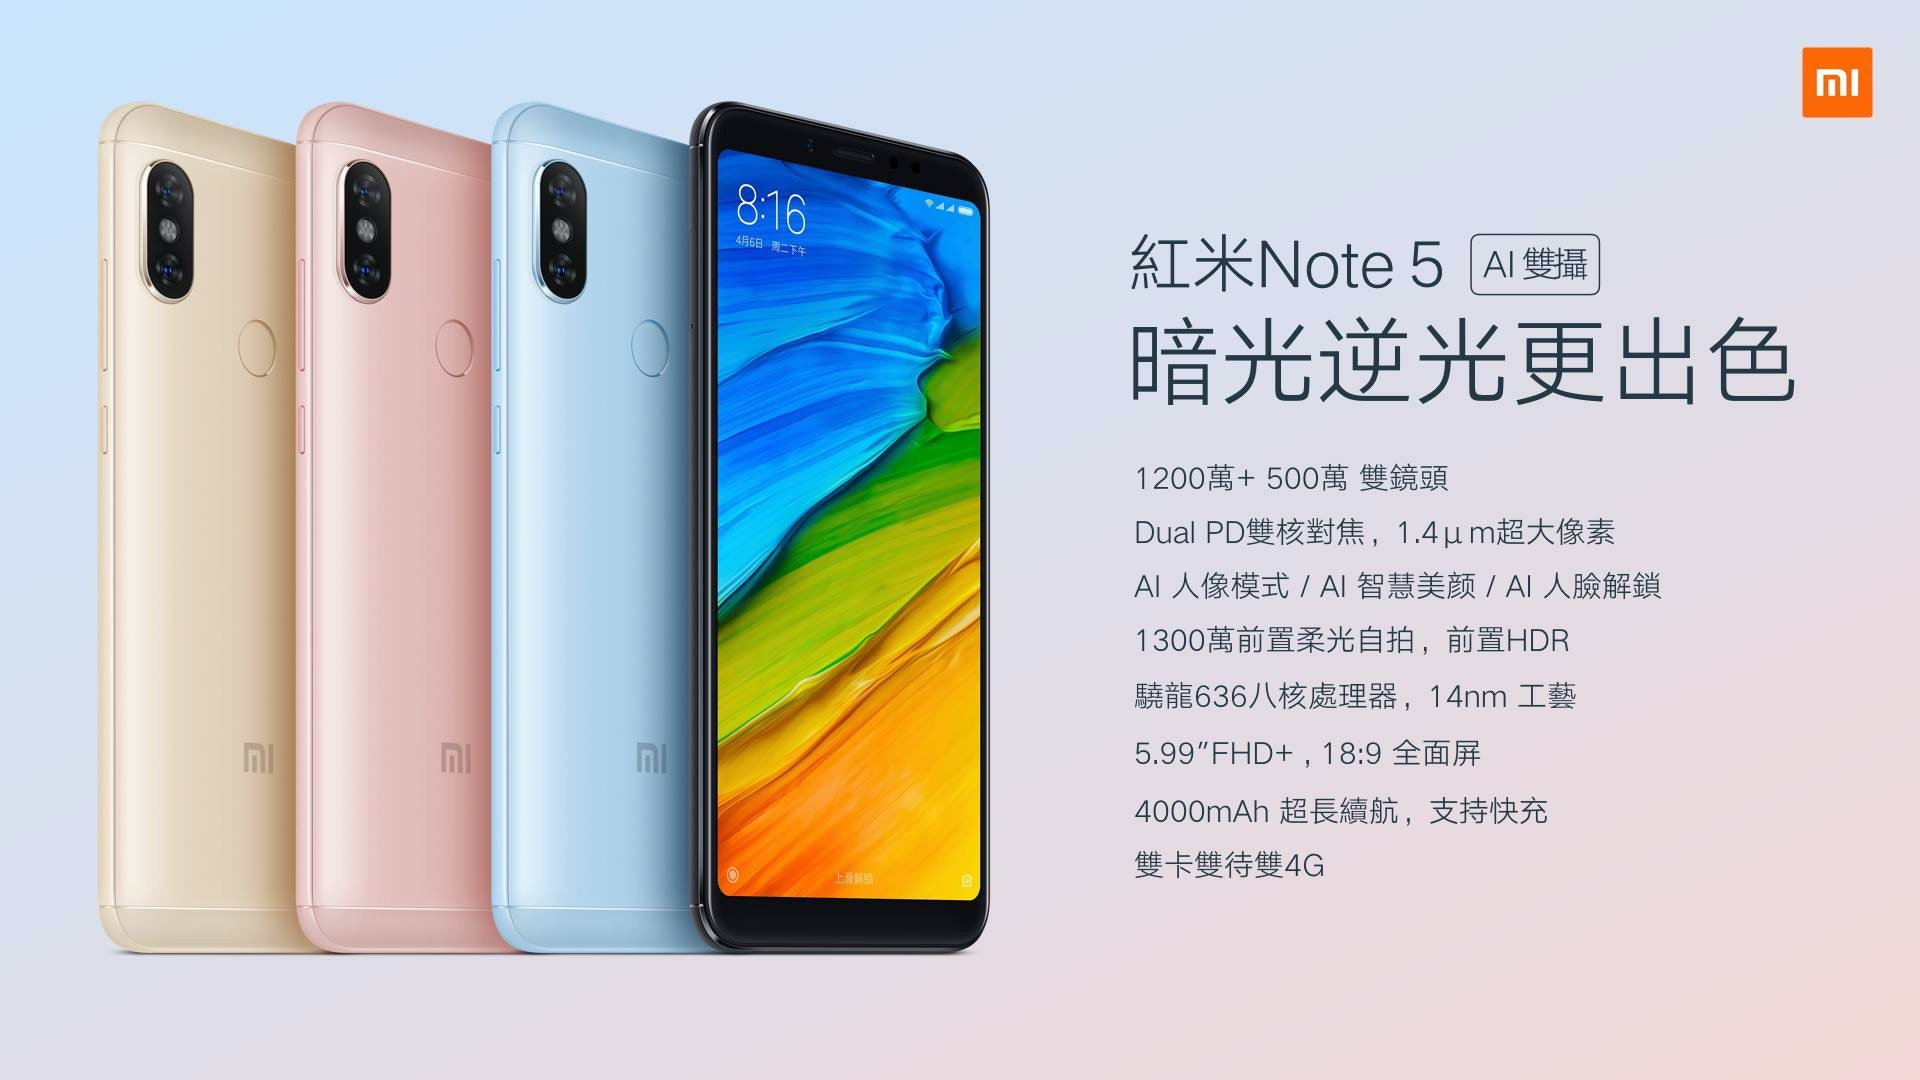 Xiaomi Redmi Note 5A, Xiaomi Redmi Note 4, Samsung Galaxy S Plus, Redmi 5, Redmi Note 5, , Xiaomi Redmi, Xiaomi, Qualcomm Snapdragon, Telephone, xiaomi redmi 5 plus, mobile phone, gadget, communication device, electronic device, technology, product, portable communications device, smartphone, feature phone, product